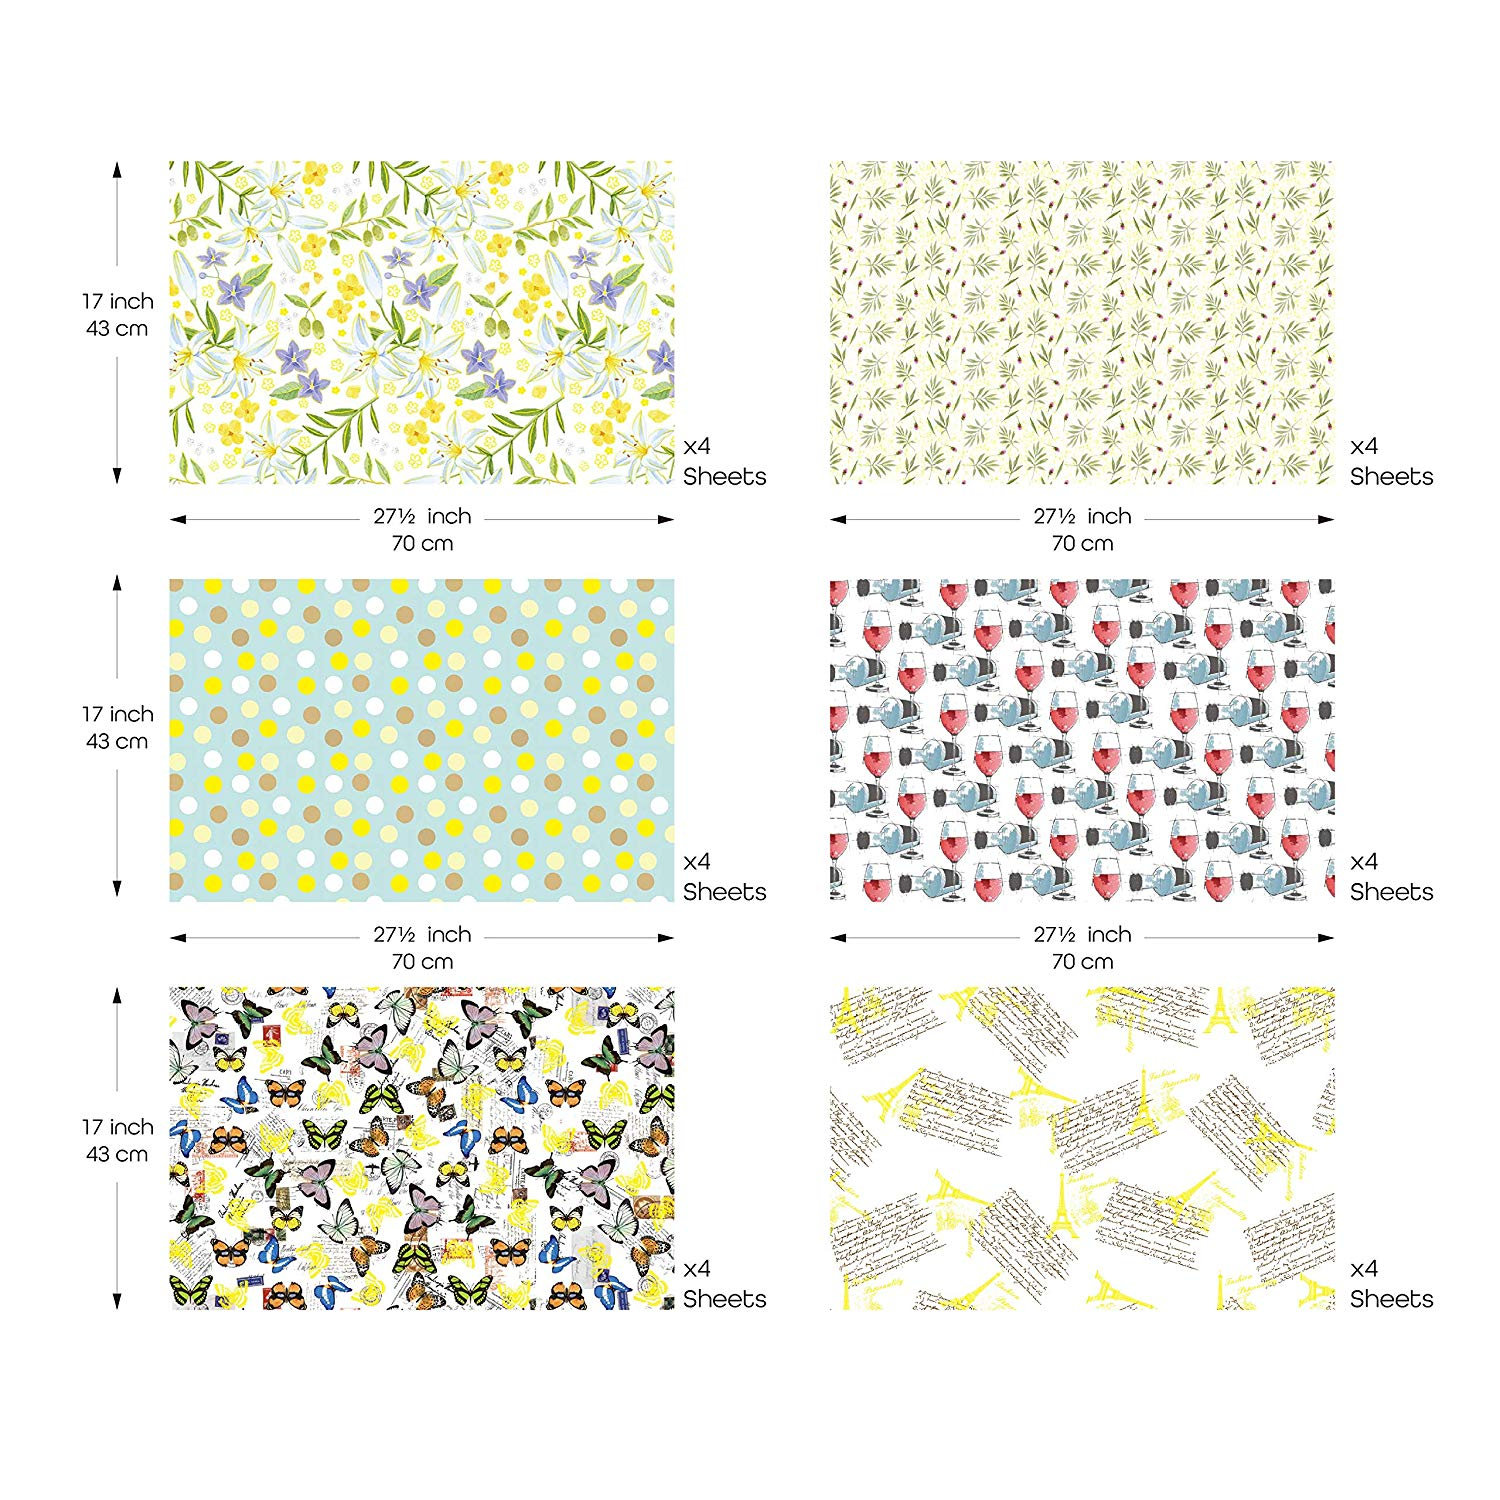 Christmas Gift Wrapper Design.Uniqooo Premium Assorted Gift Wrapping Paper 24 Sheets 6